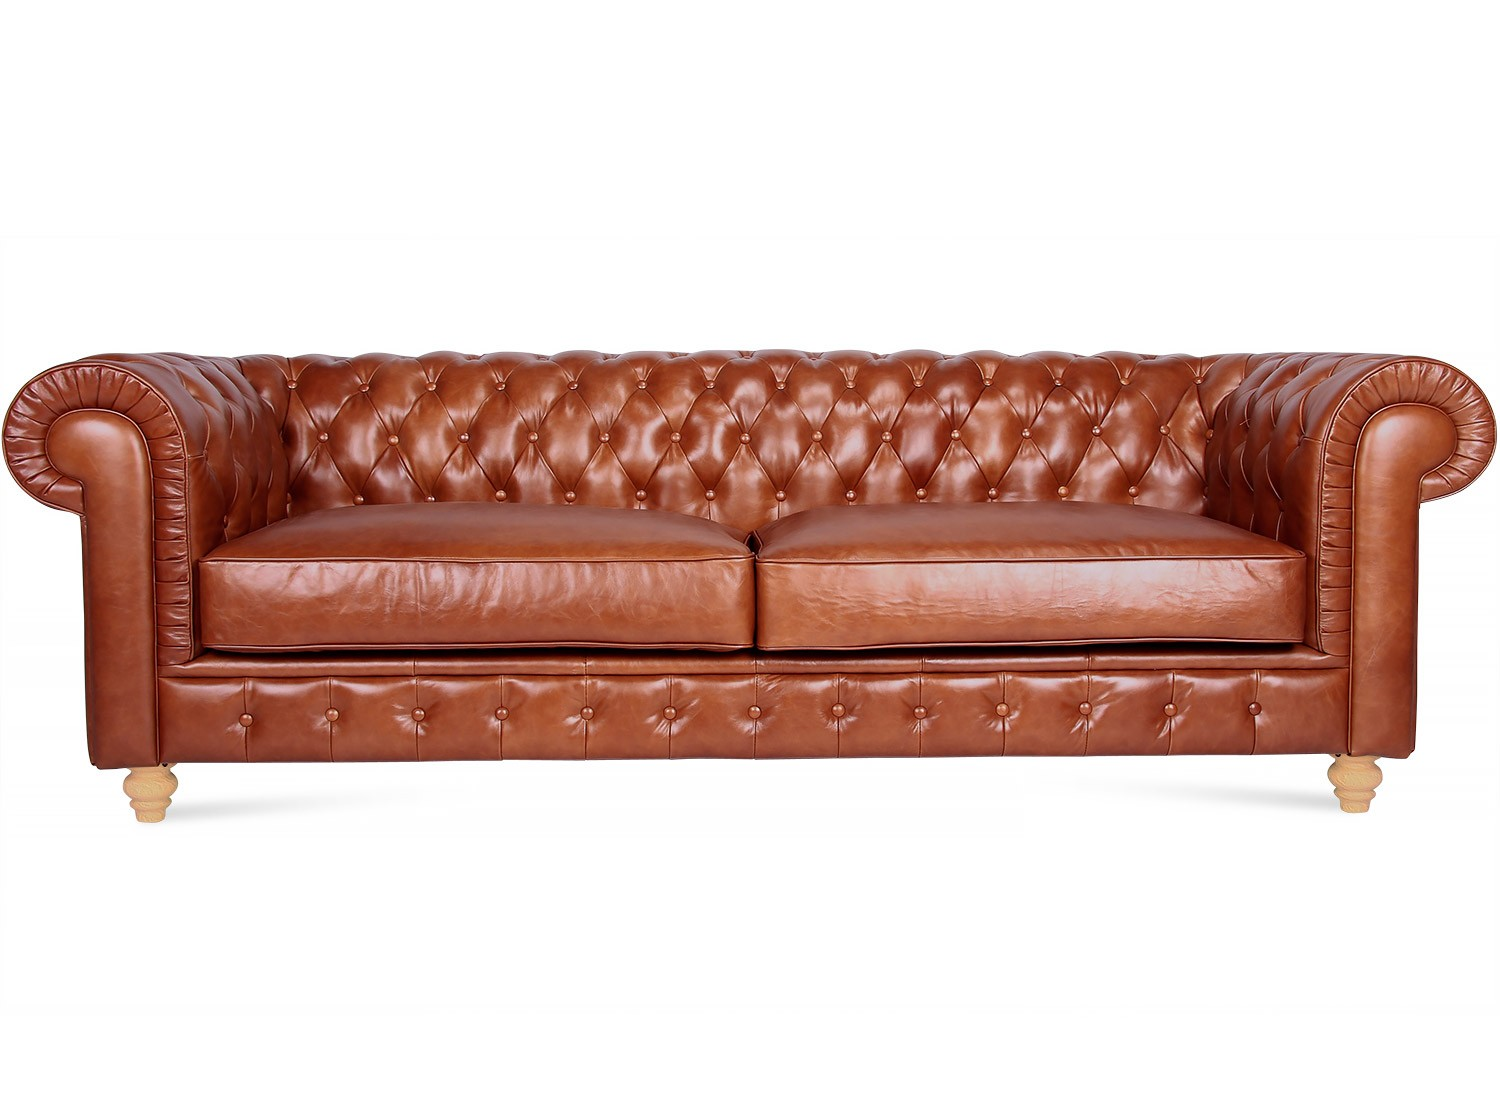 Chesterfield Sofa Chesterfield Sofa 3 Seater | Chicicat